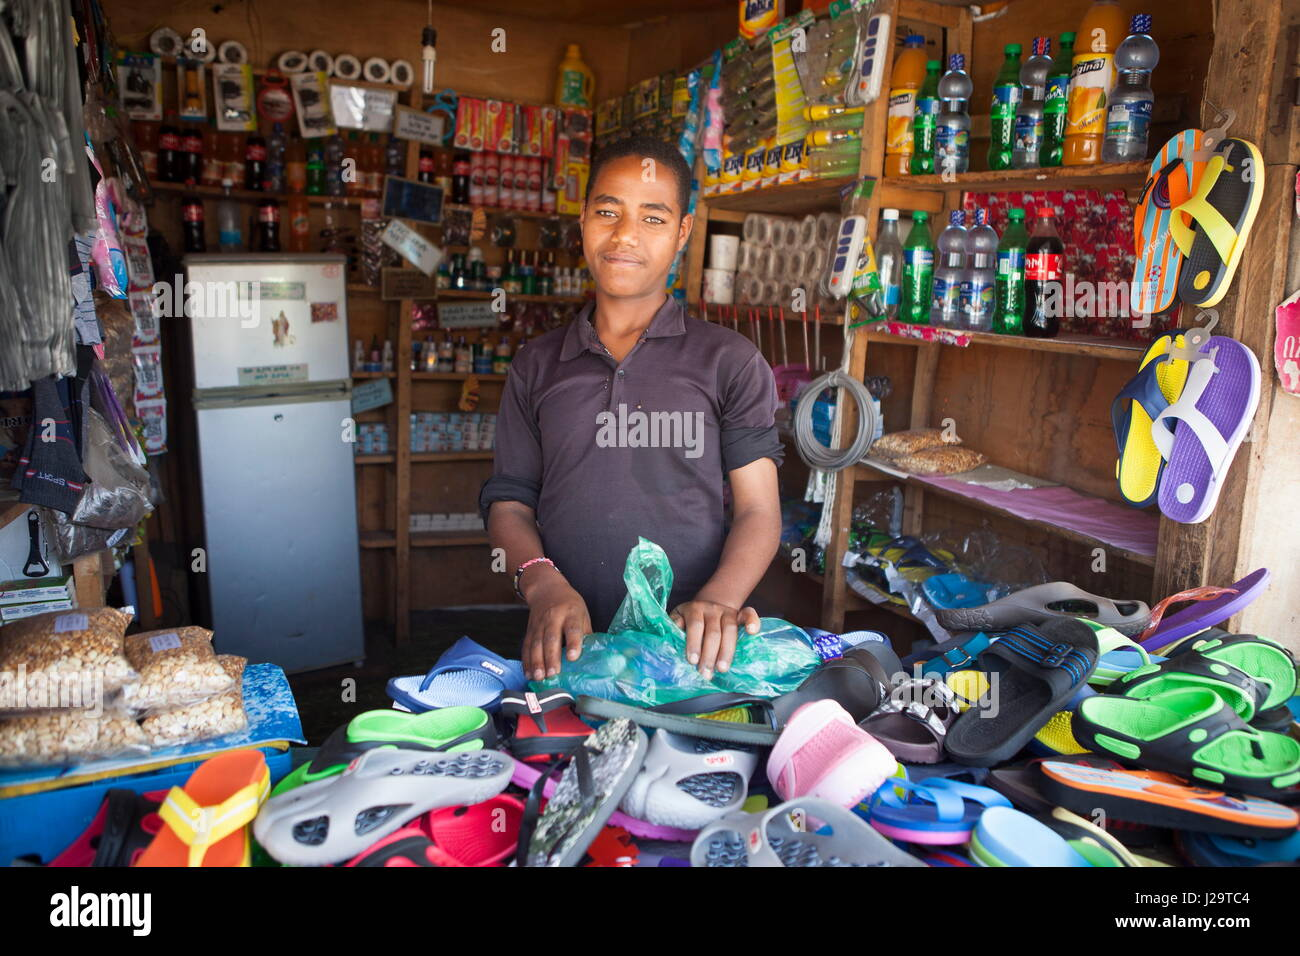 Ethiopia, Awassa, Portrait of a 20-year-old man in a grocery shop - Stock Image